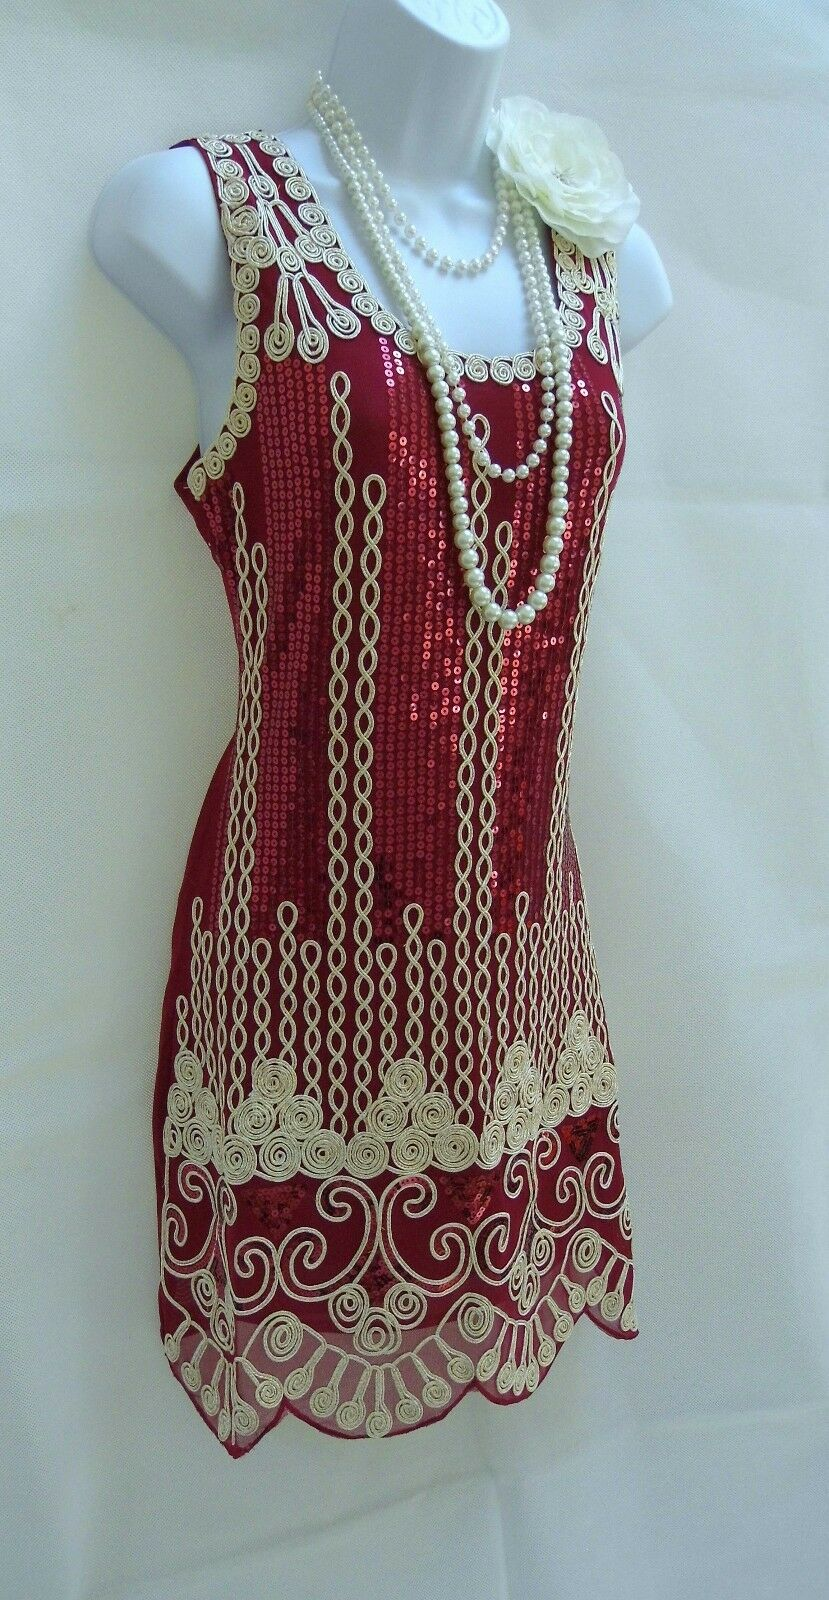 1920'S STYLE GATSBY RED VINTAGE LOOK CHARLESTON SEQUIN FLAPPER DRESS SIZE 10 12